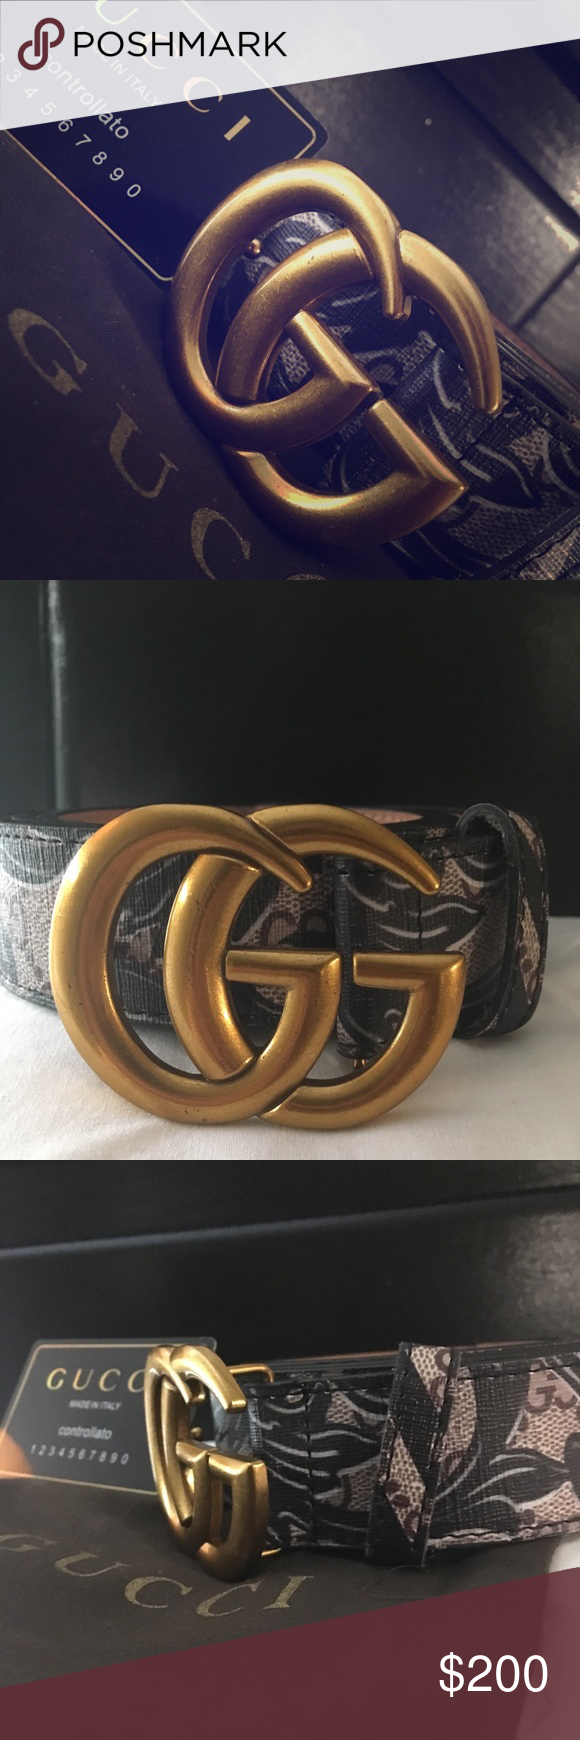 8cc91caaf authentic Gucci Belt Brand spankin new deal deal Gucci Accessories Belts